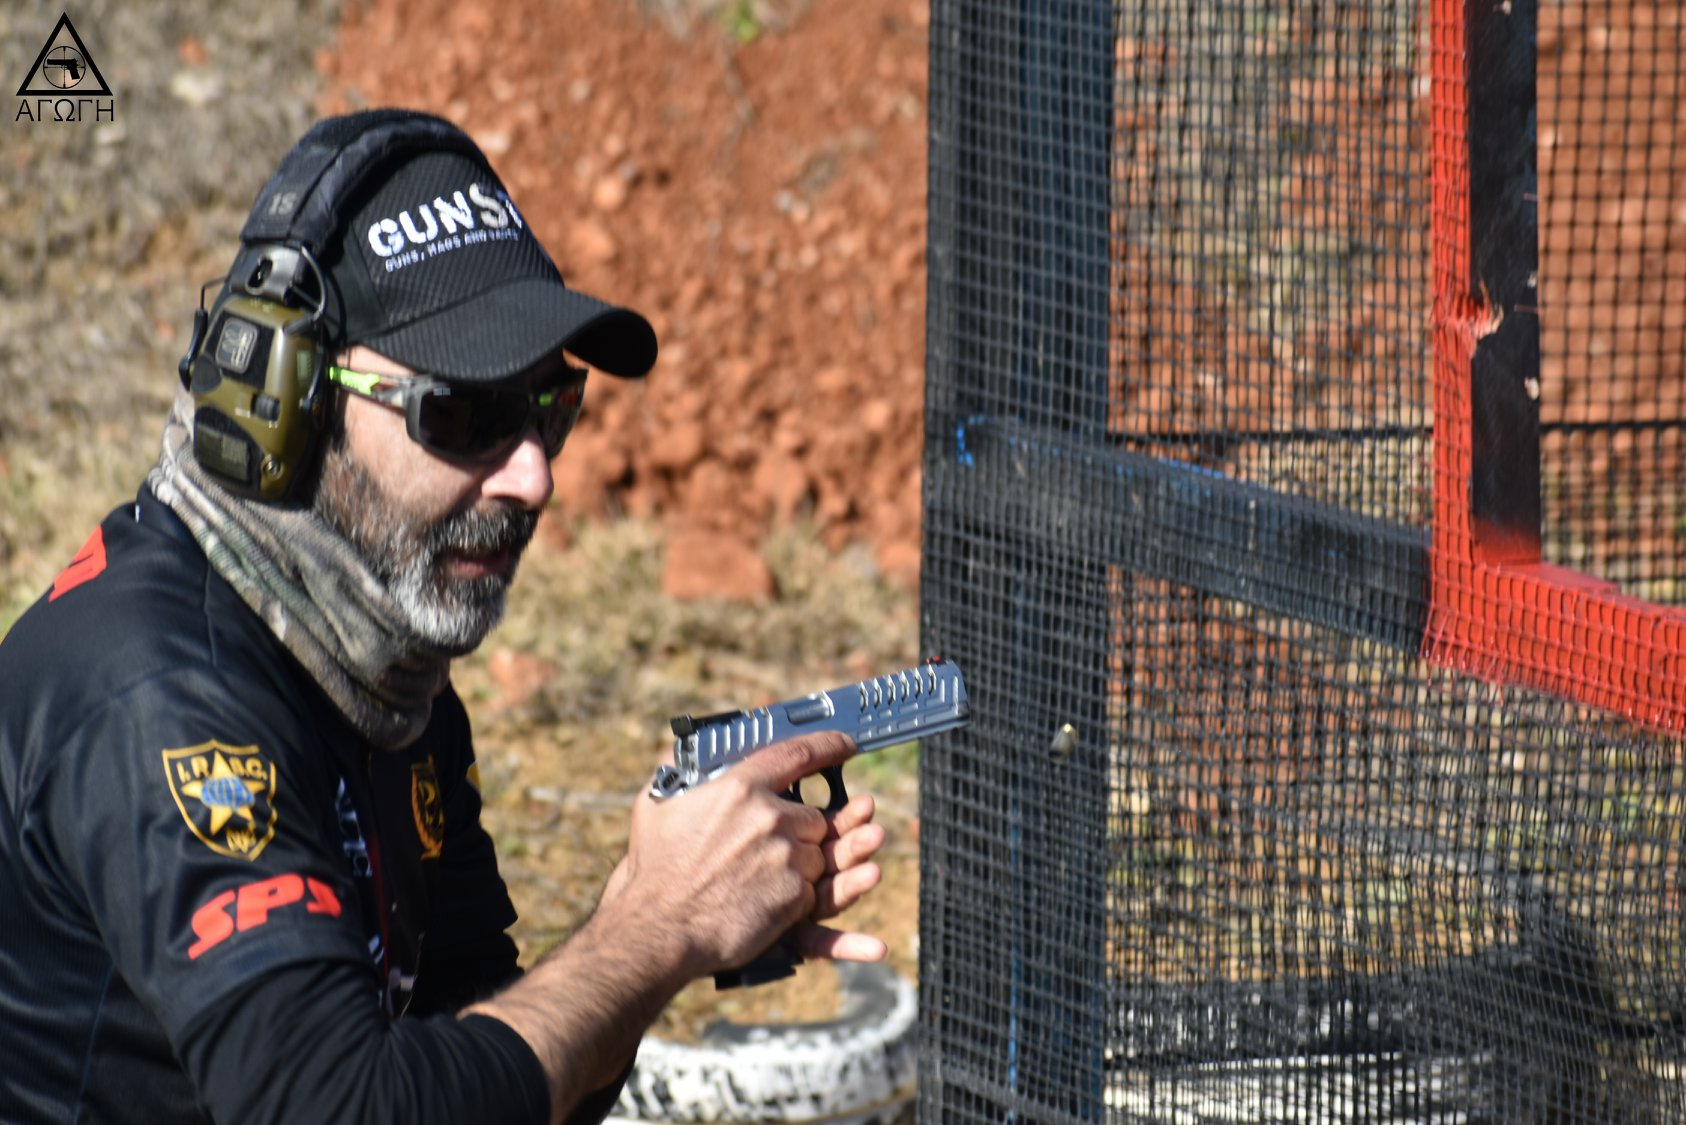 ipsc, competition, practical shooting, ipsc standard division